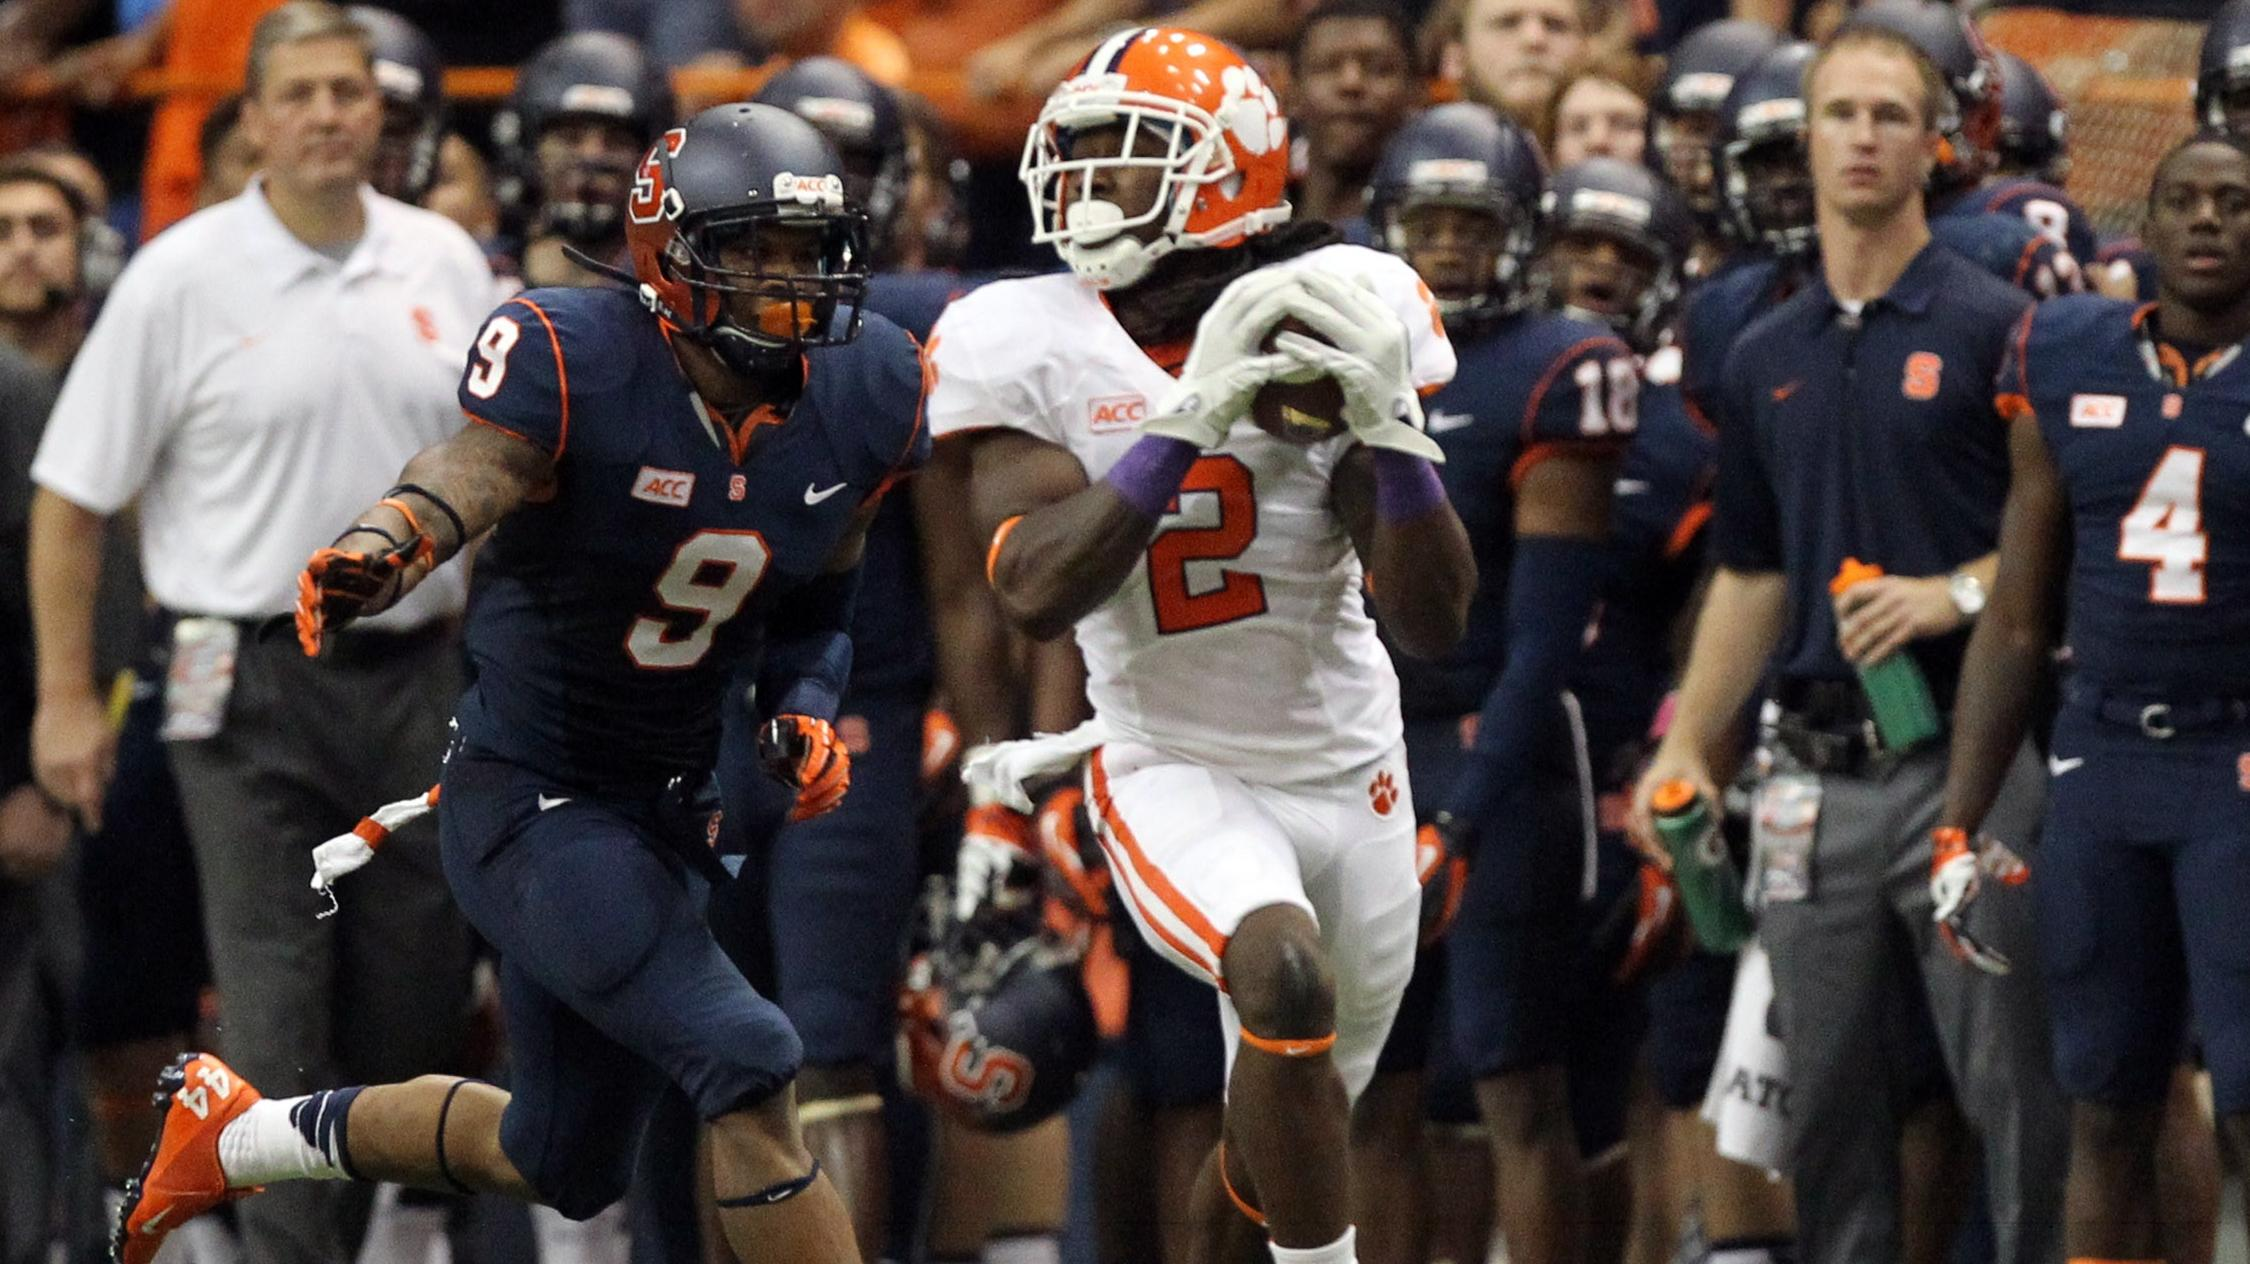 Clemson Football Video: All In Highlight Reel, Oct. 7